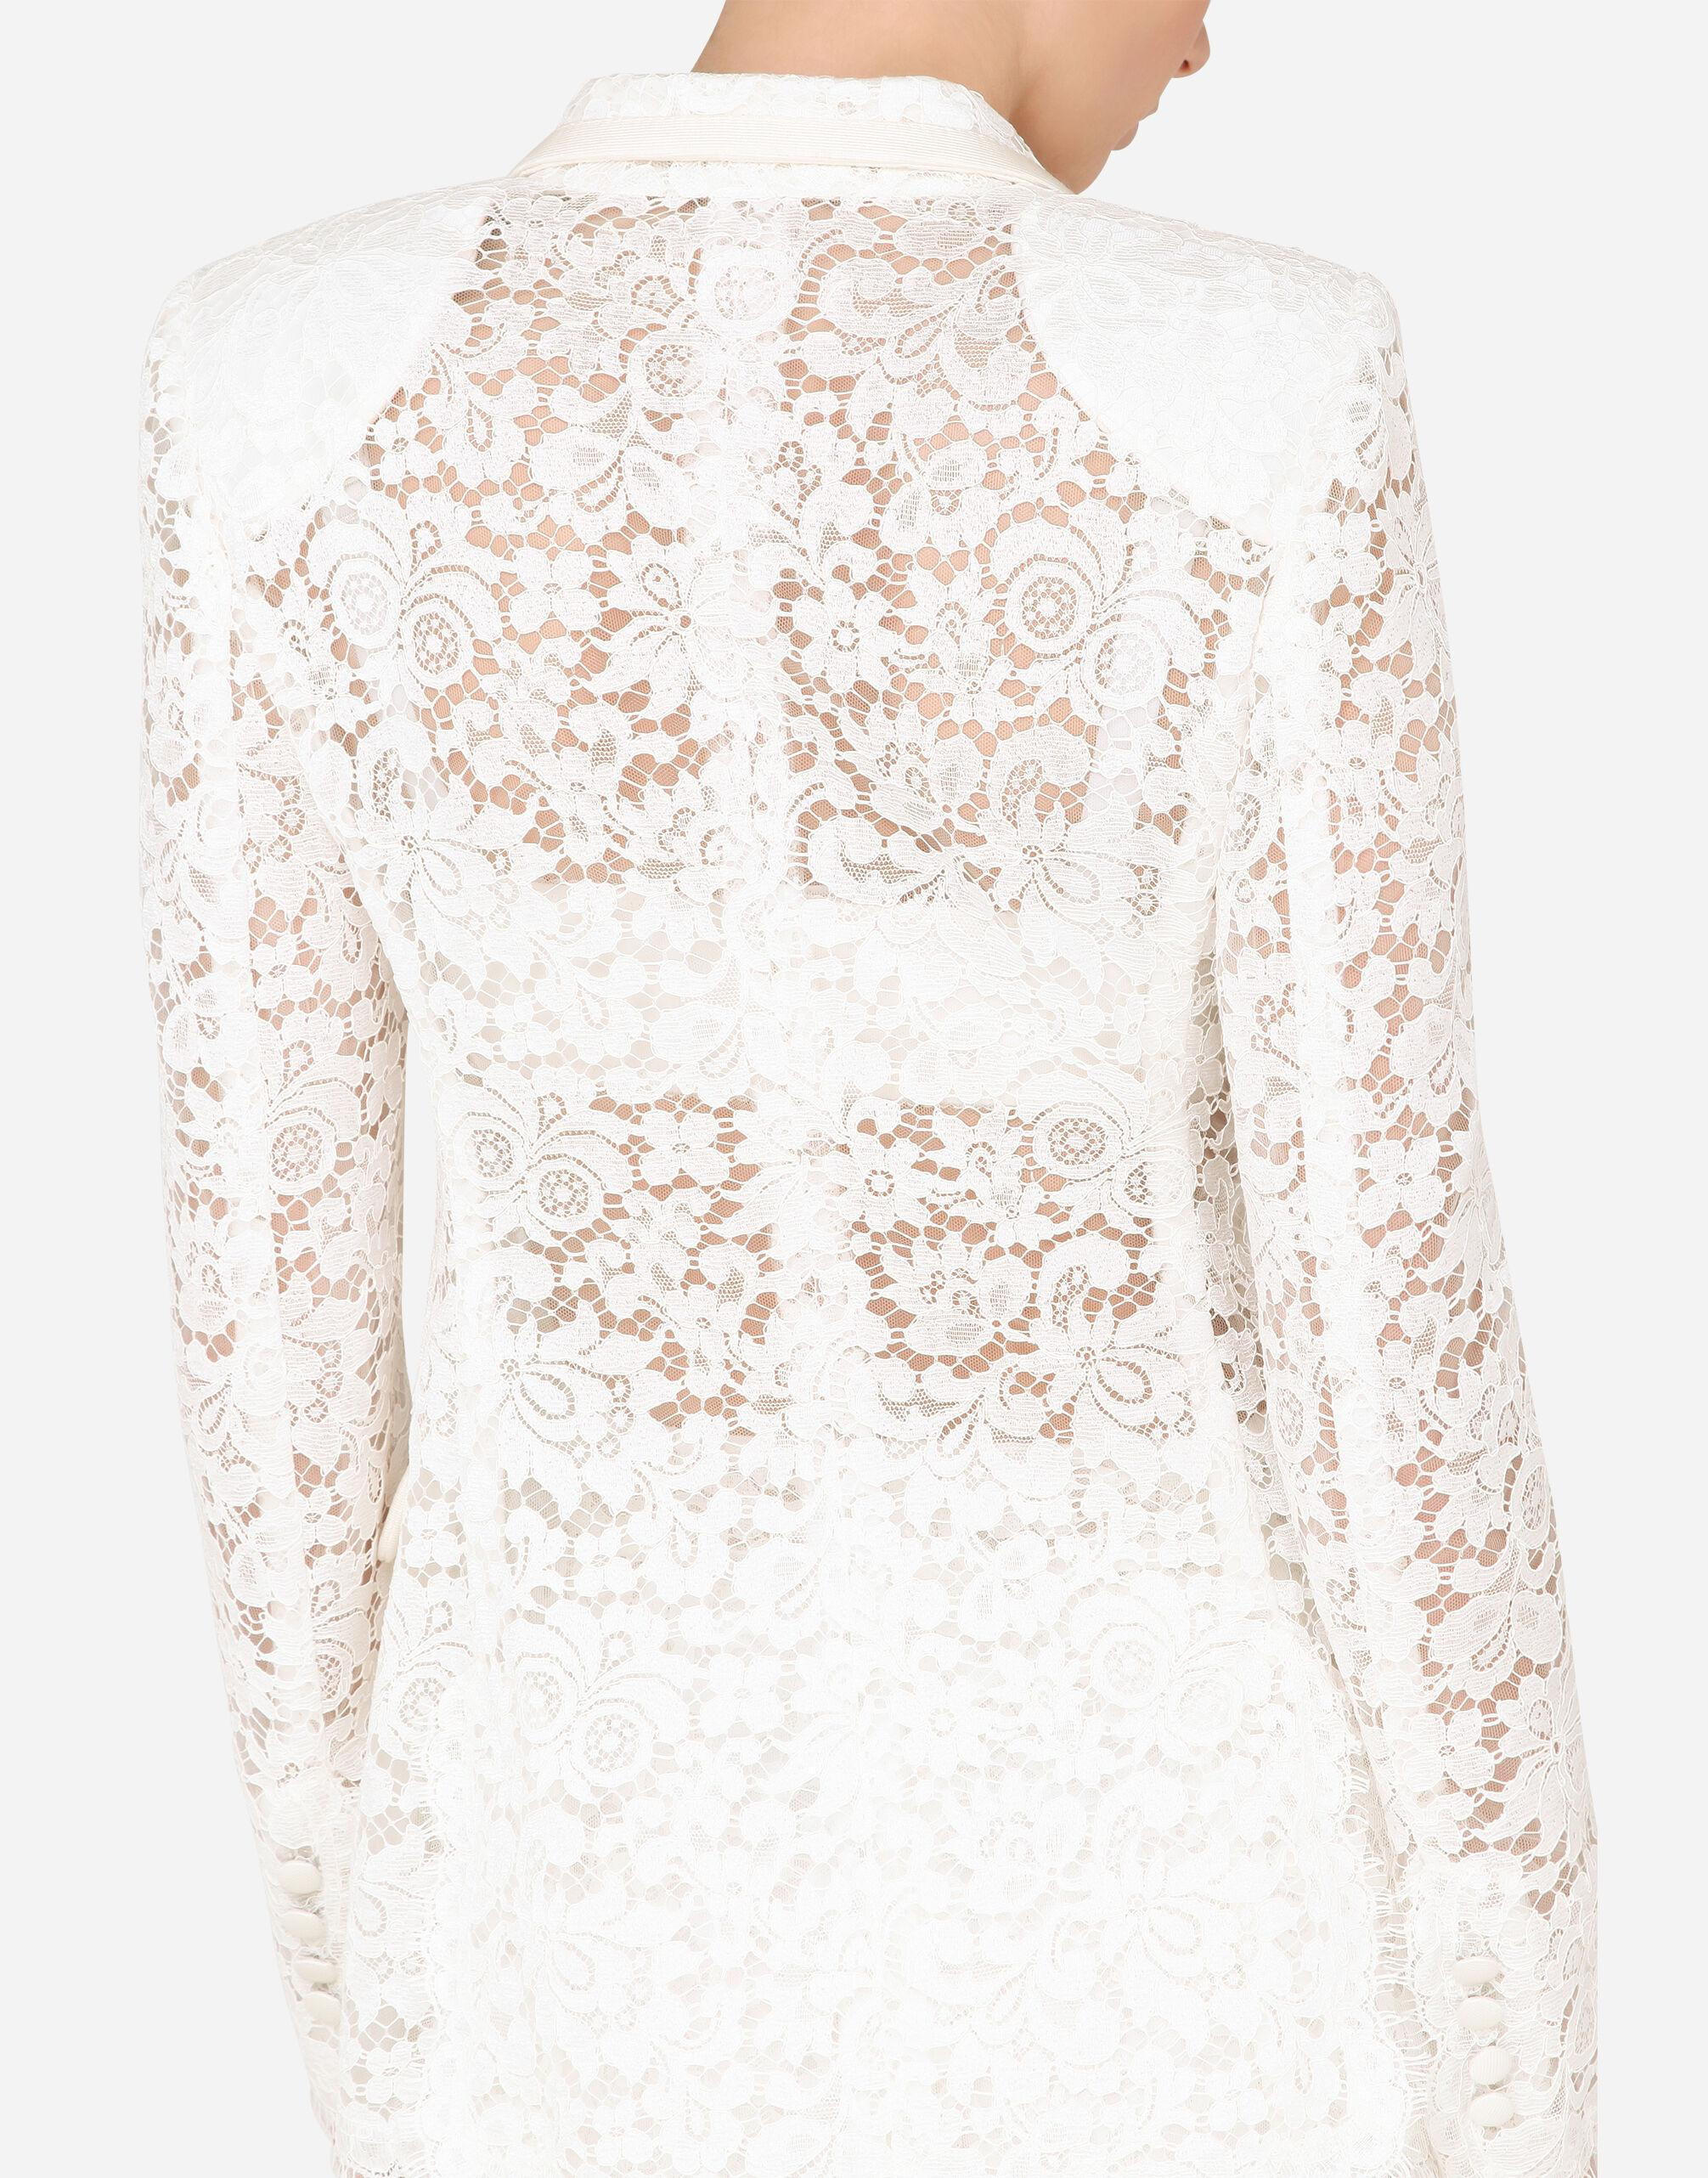 Lace jacket with edge detailing 5